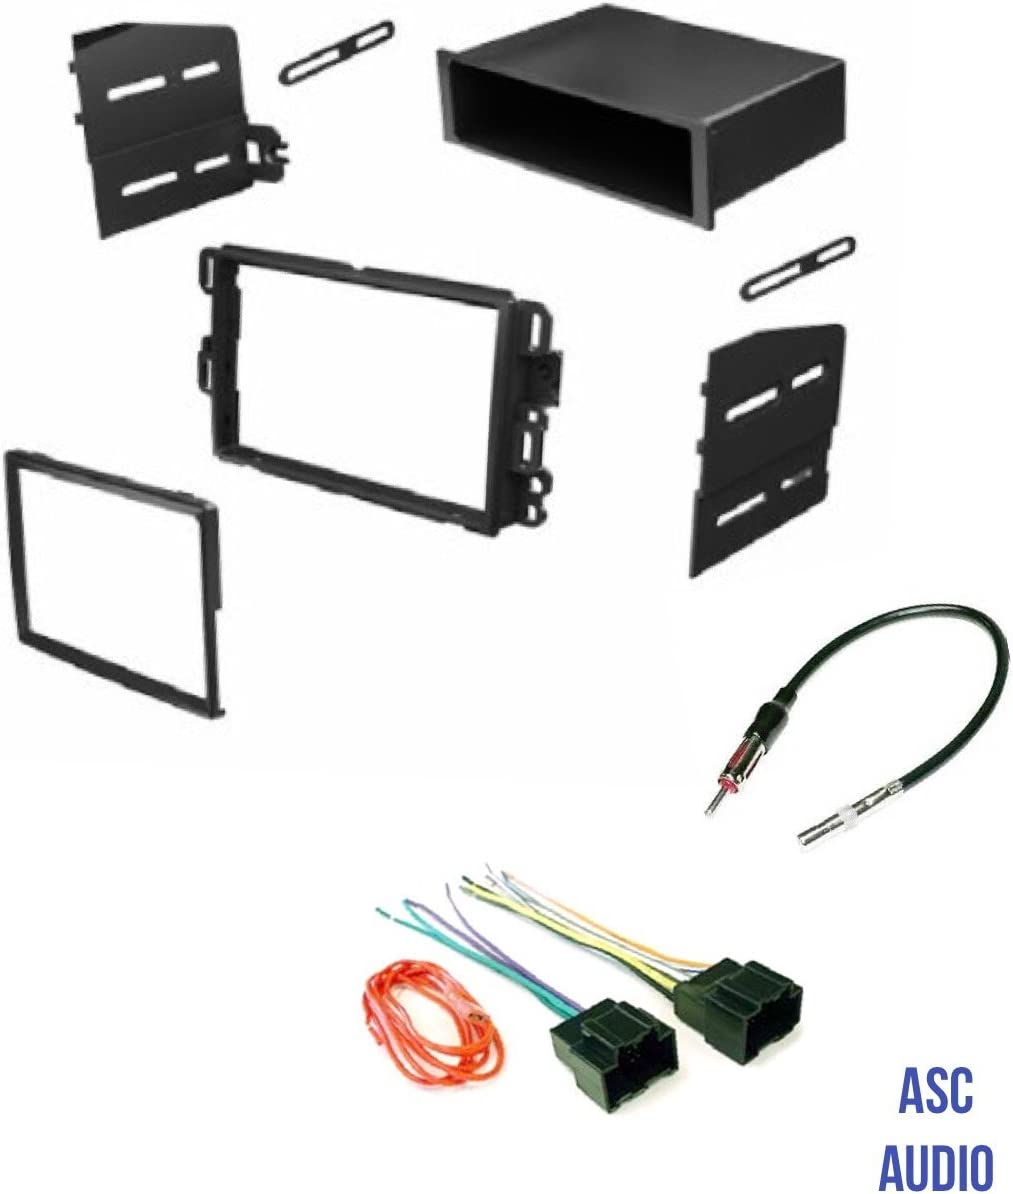 Aftermarket Radio Stereo Install Dash Kit Mount Wire Harness Antenna Adapter